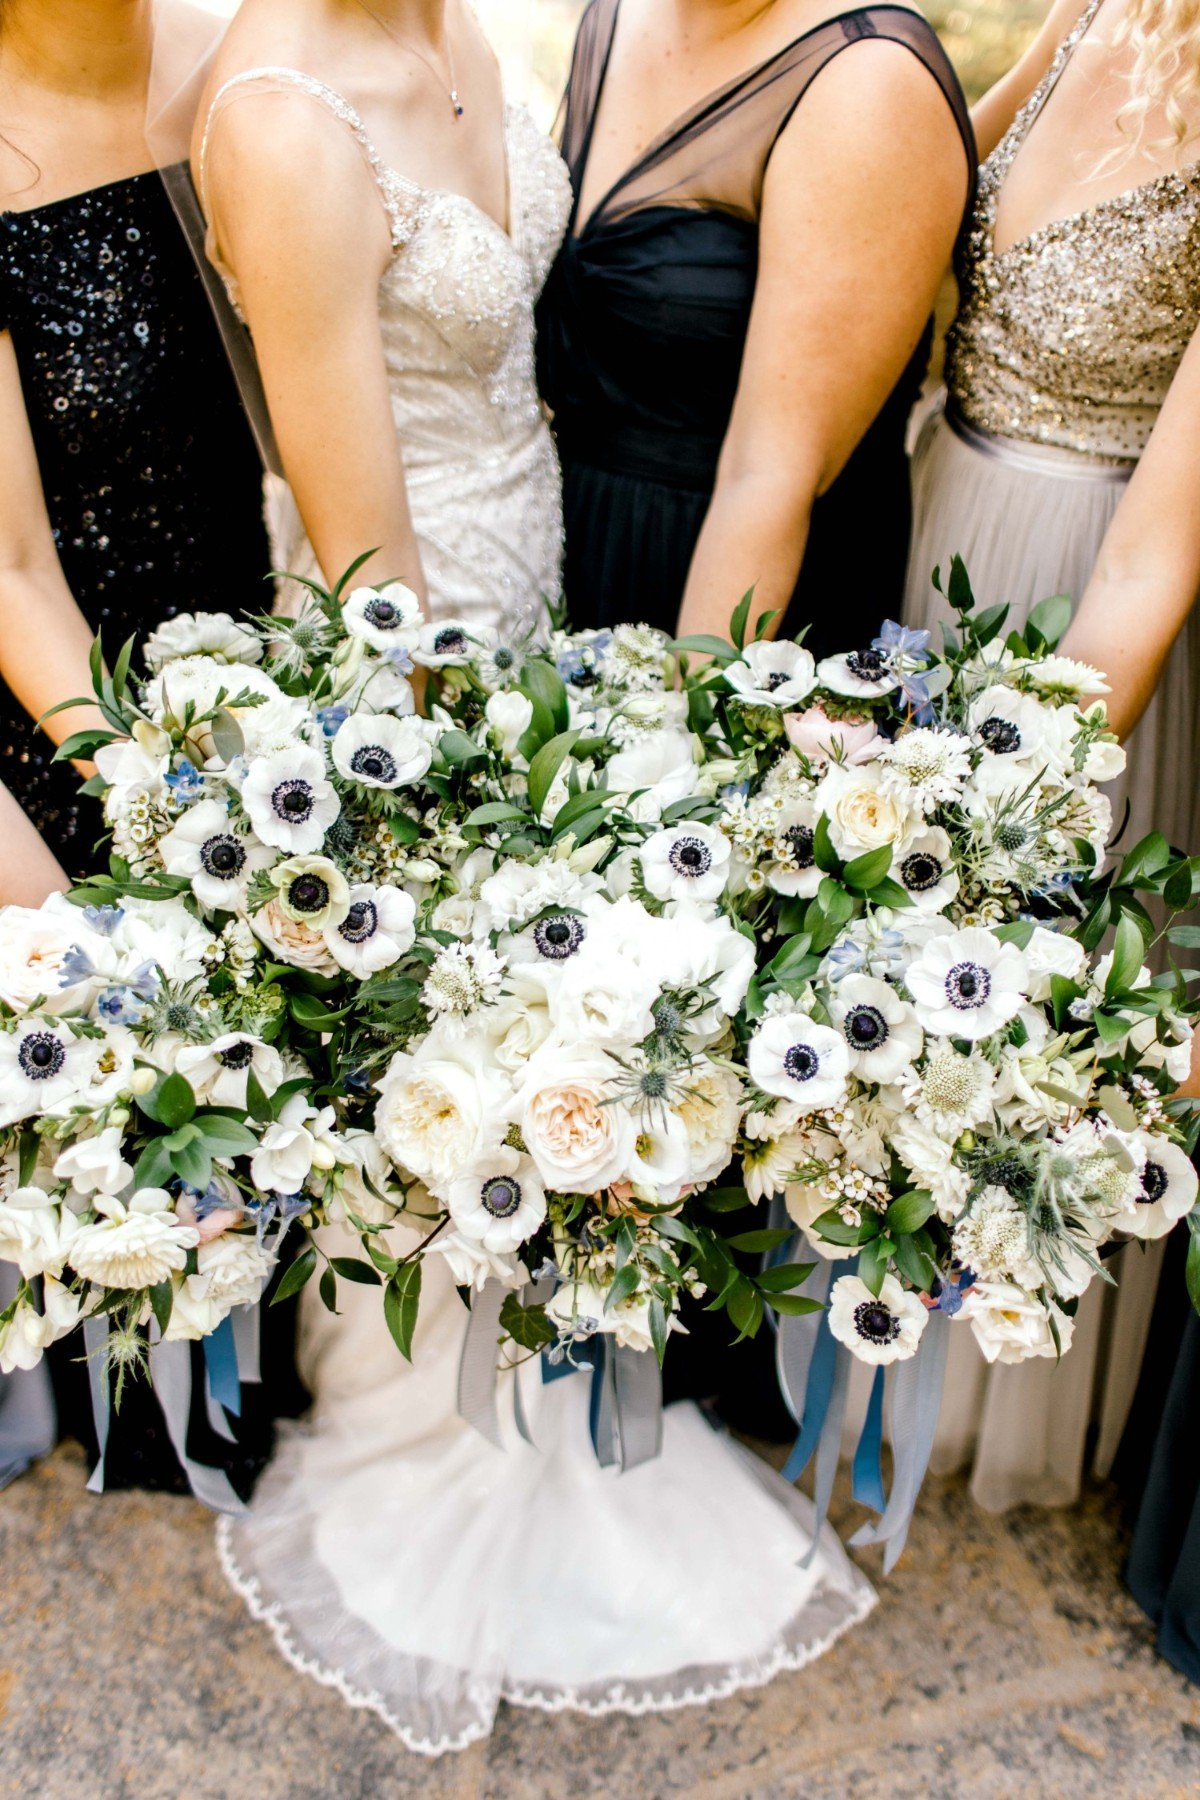 peppers-wedding-the-big-and-bright-10.20.18-45.jpg